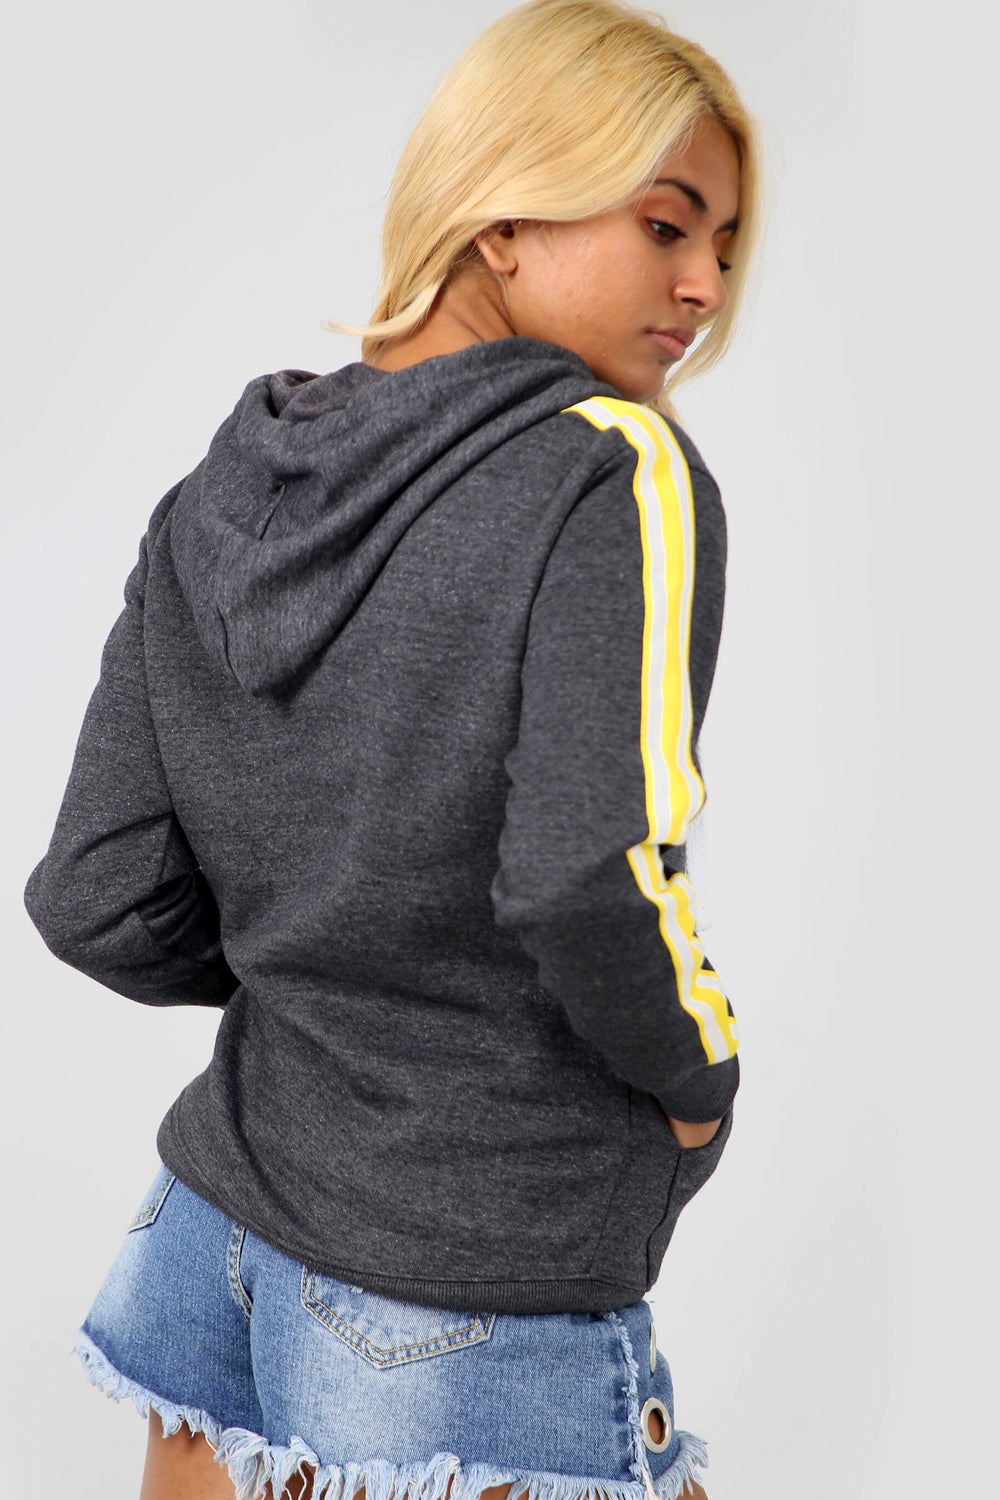 Grey Striped Sleeve Oversized Hooded Sweatshirt - bejealous-com